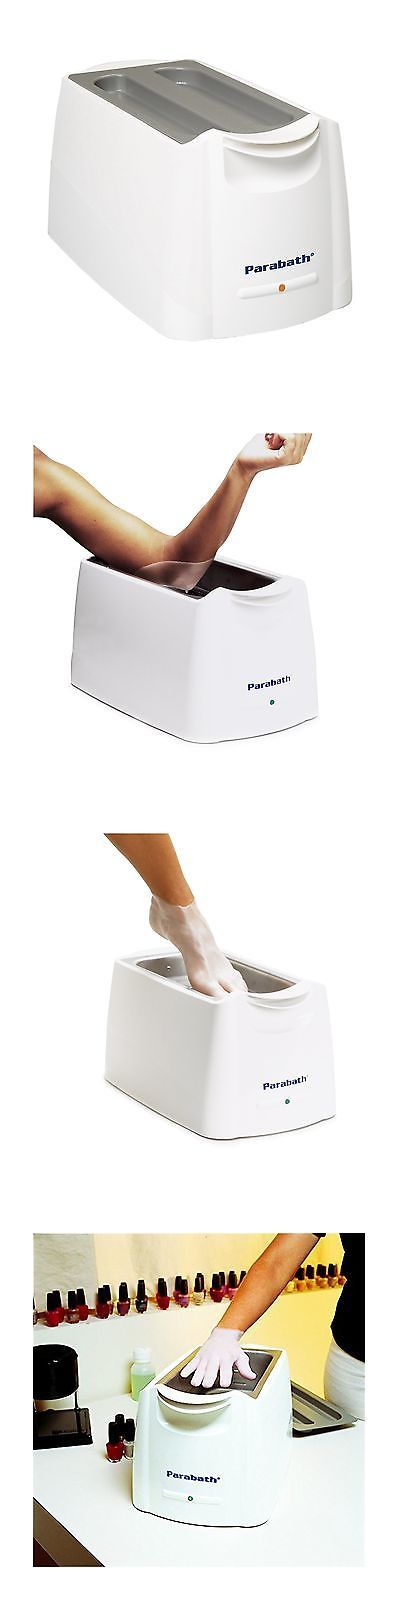 Spas Baths and Supplies: Parabath Paraffin Wax Heating Unit Paraffin Wax Treatment Bath For Heat Thera... -> BUY IT NOW ONLY: $217.77 on eBay!